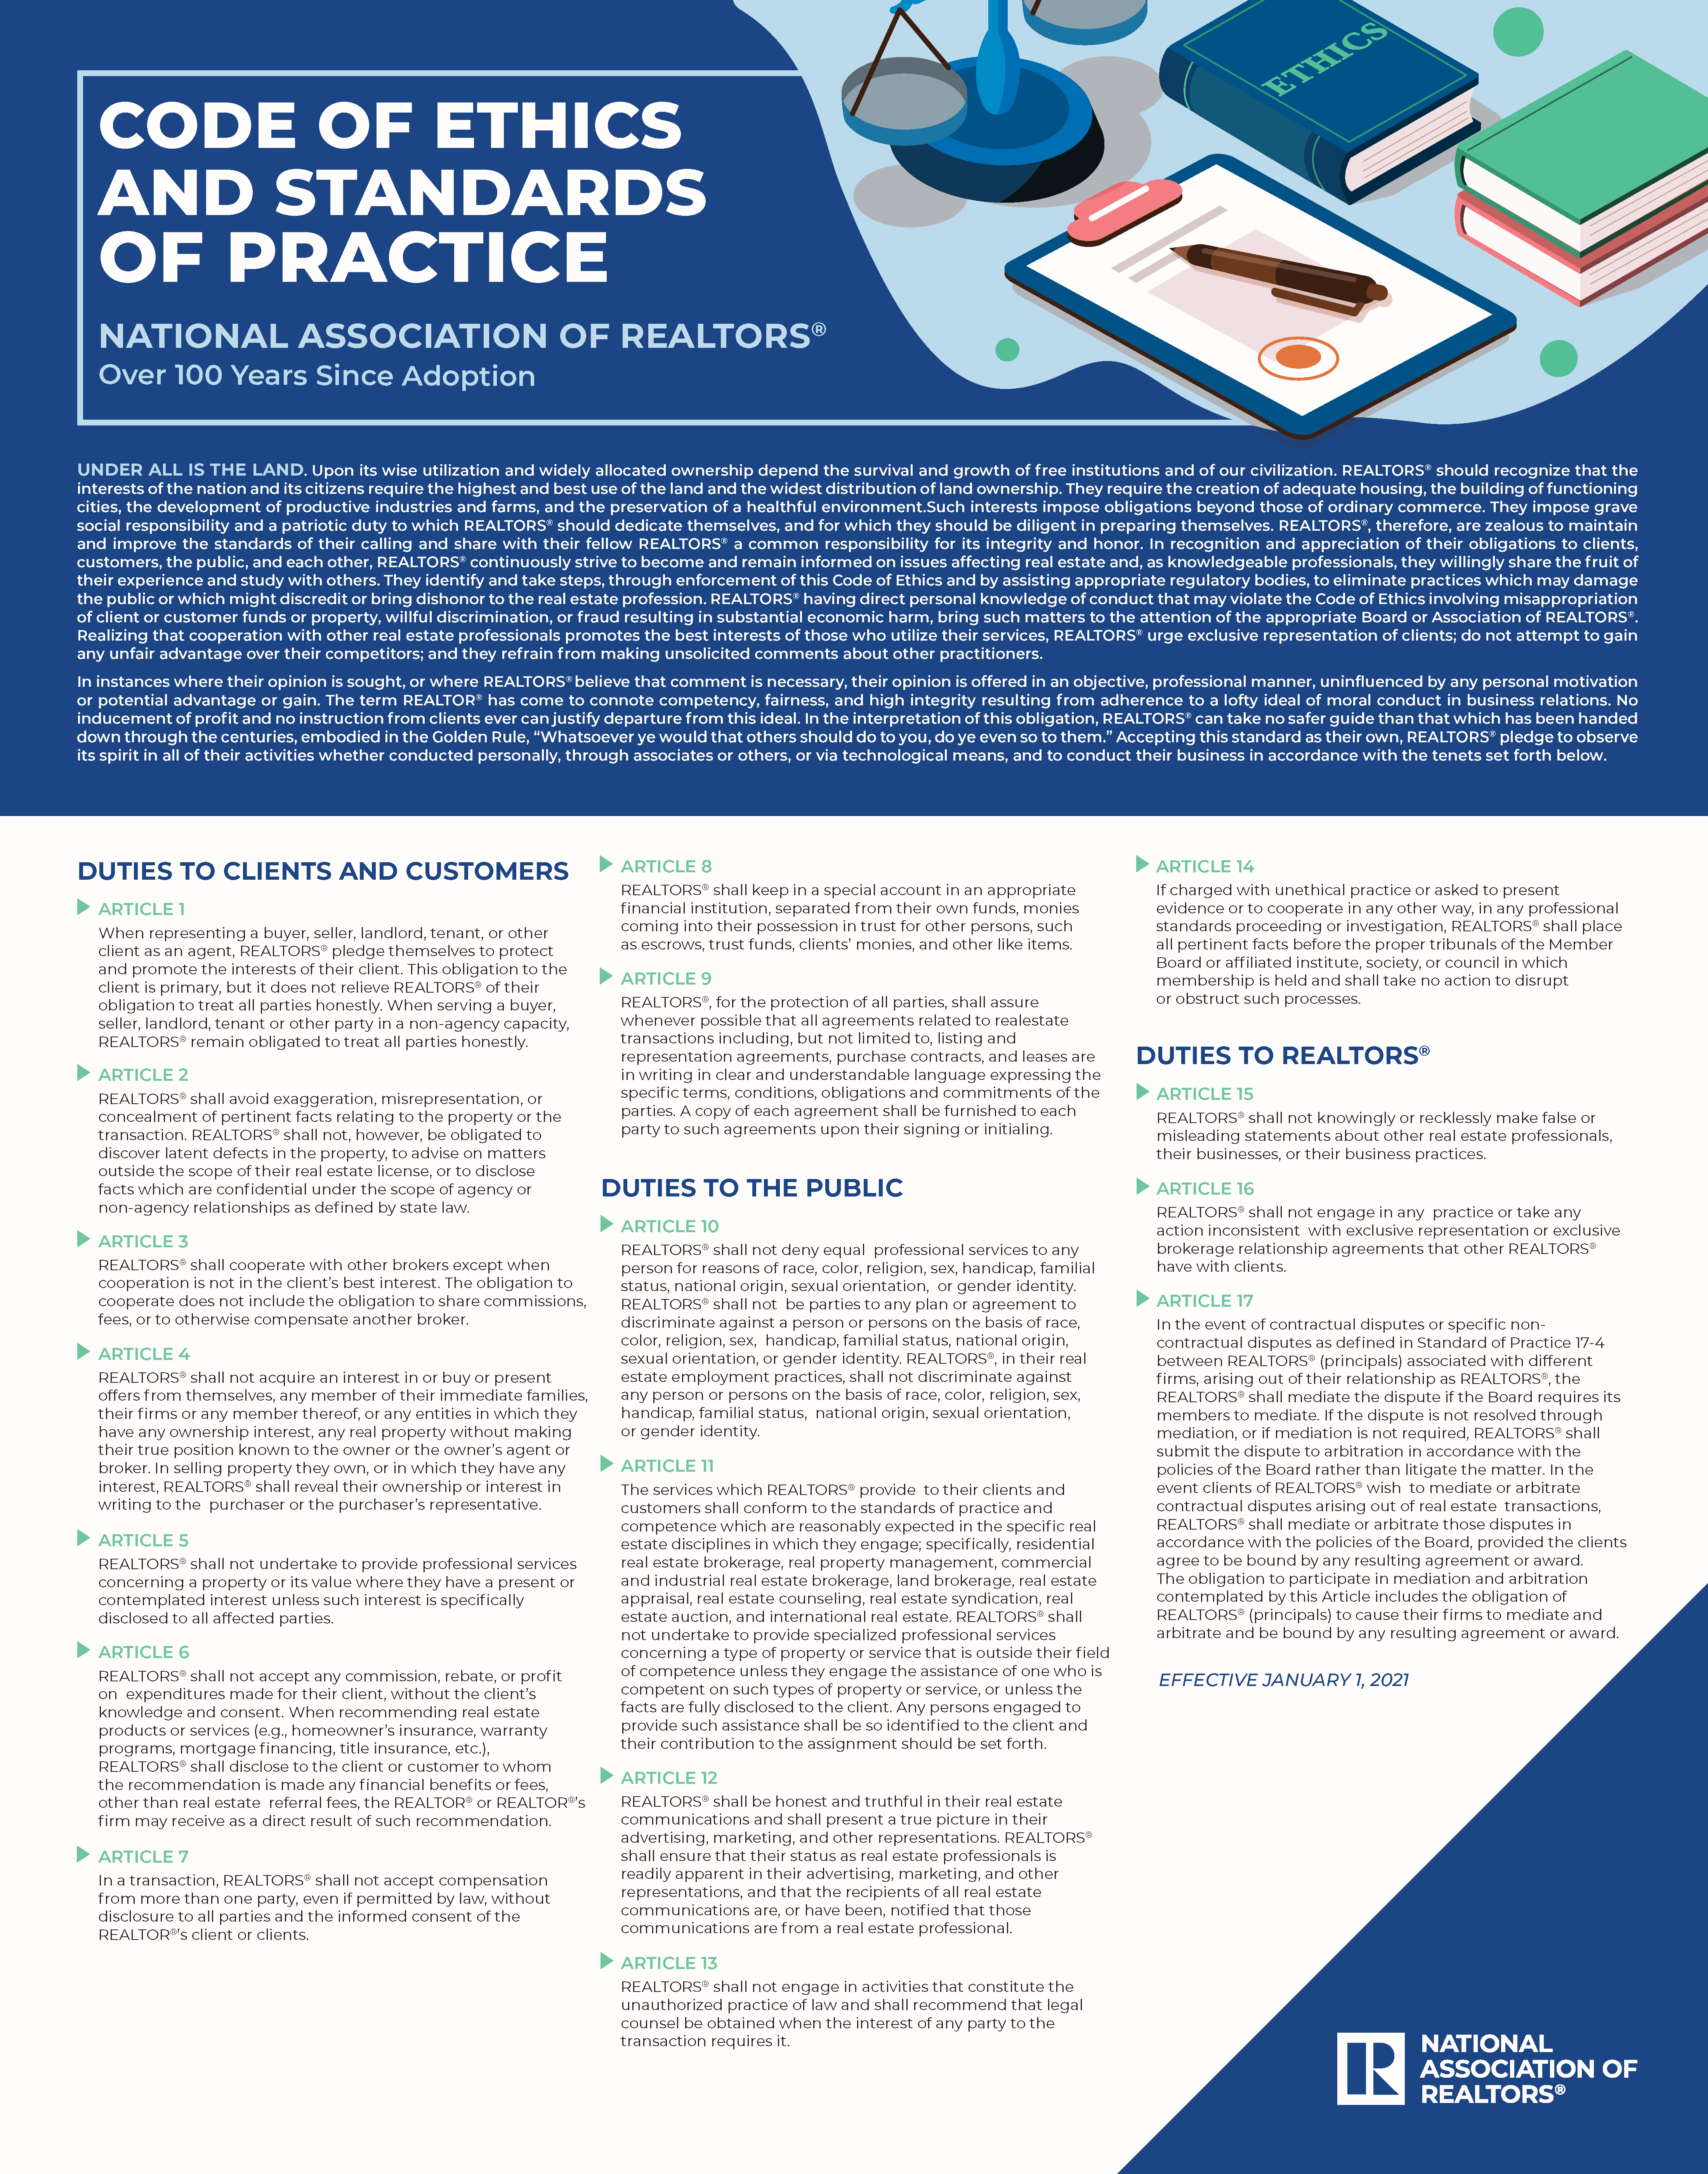 2021-03-26-COE-Standards-of-practice-color-poster